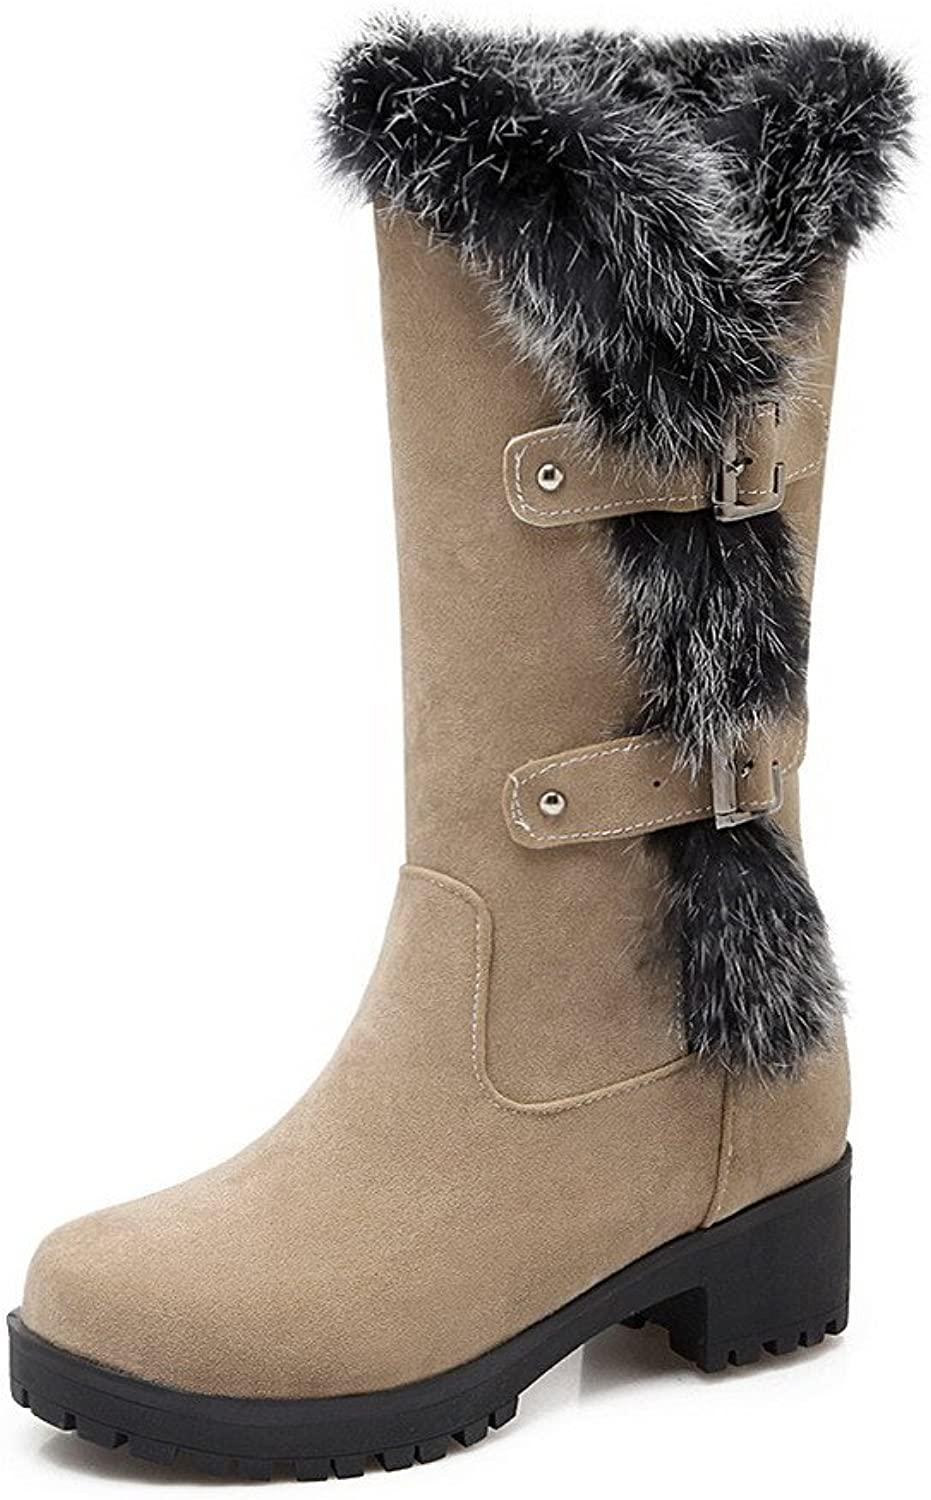 AllhqFashion Women's Frosted Pull On Round Closed Toe Kitten Heels Solid Boots